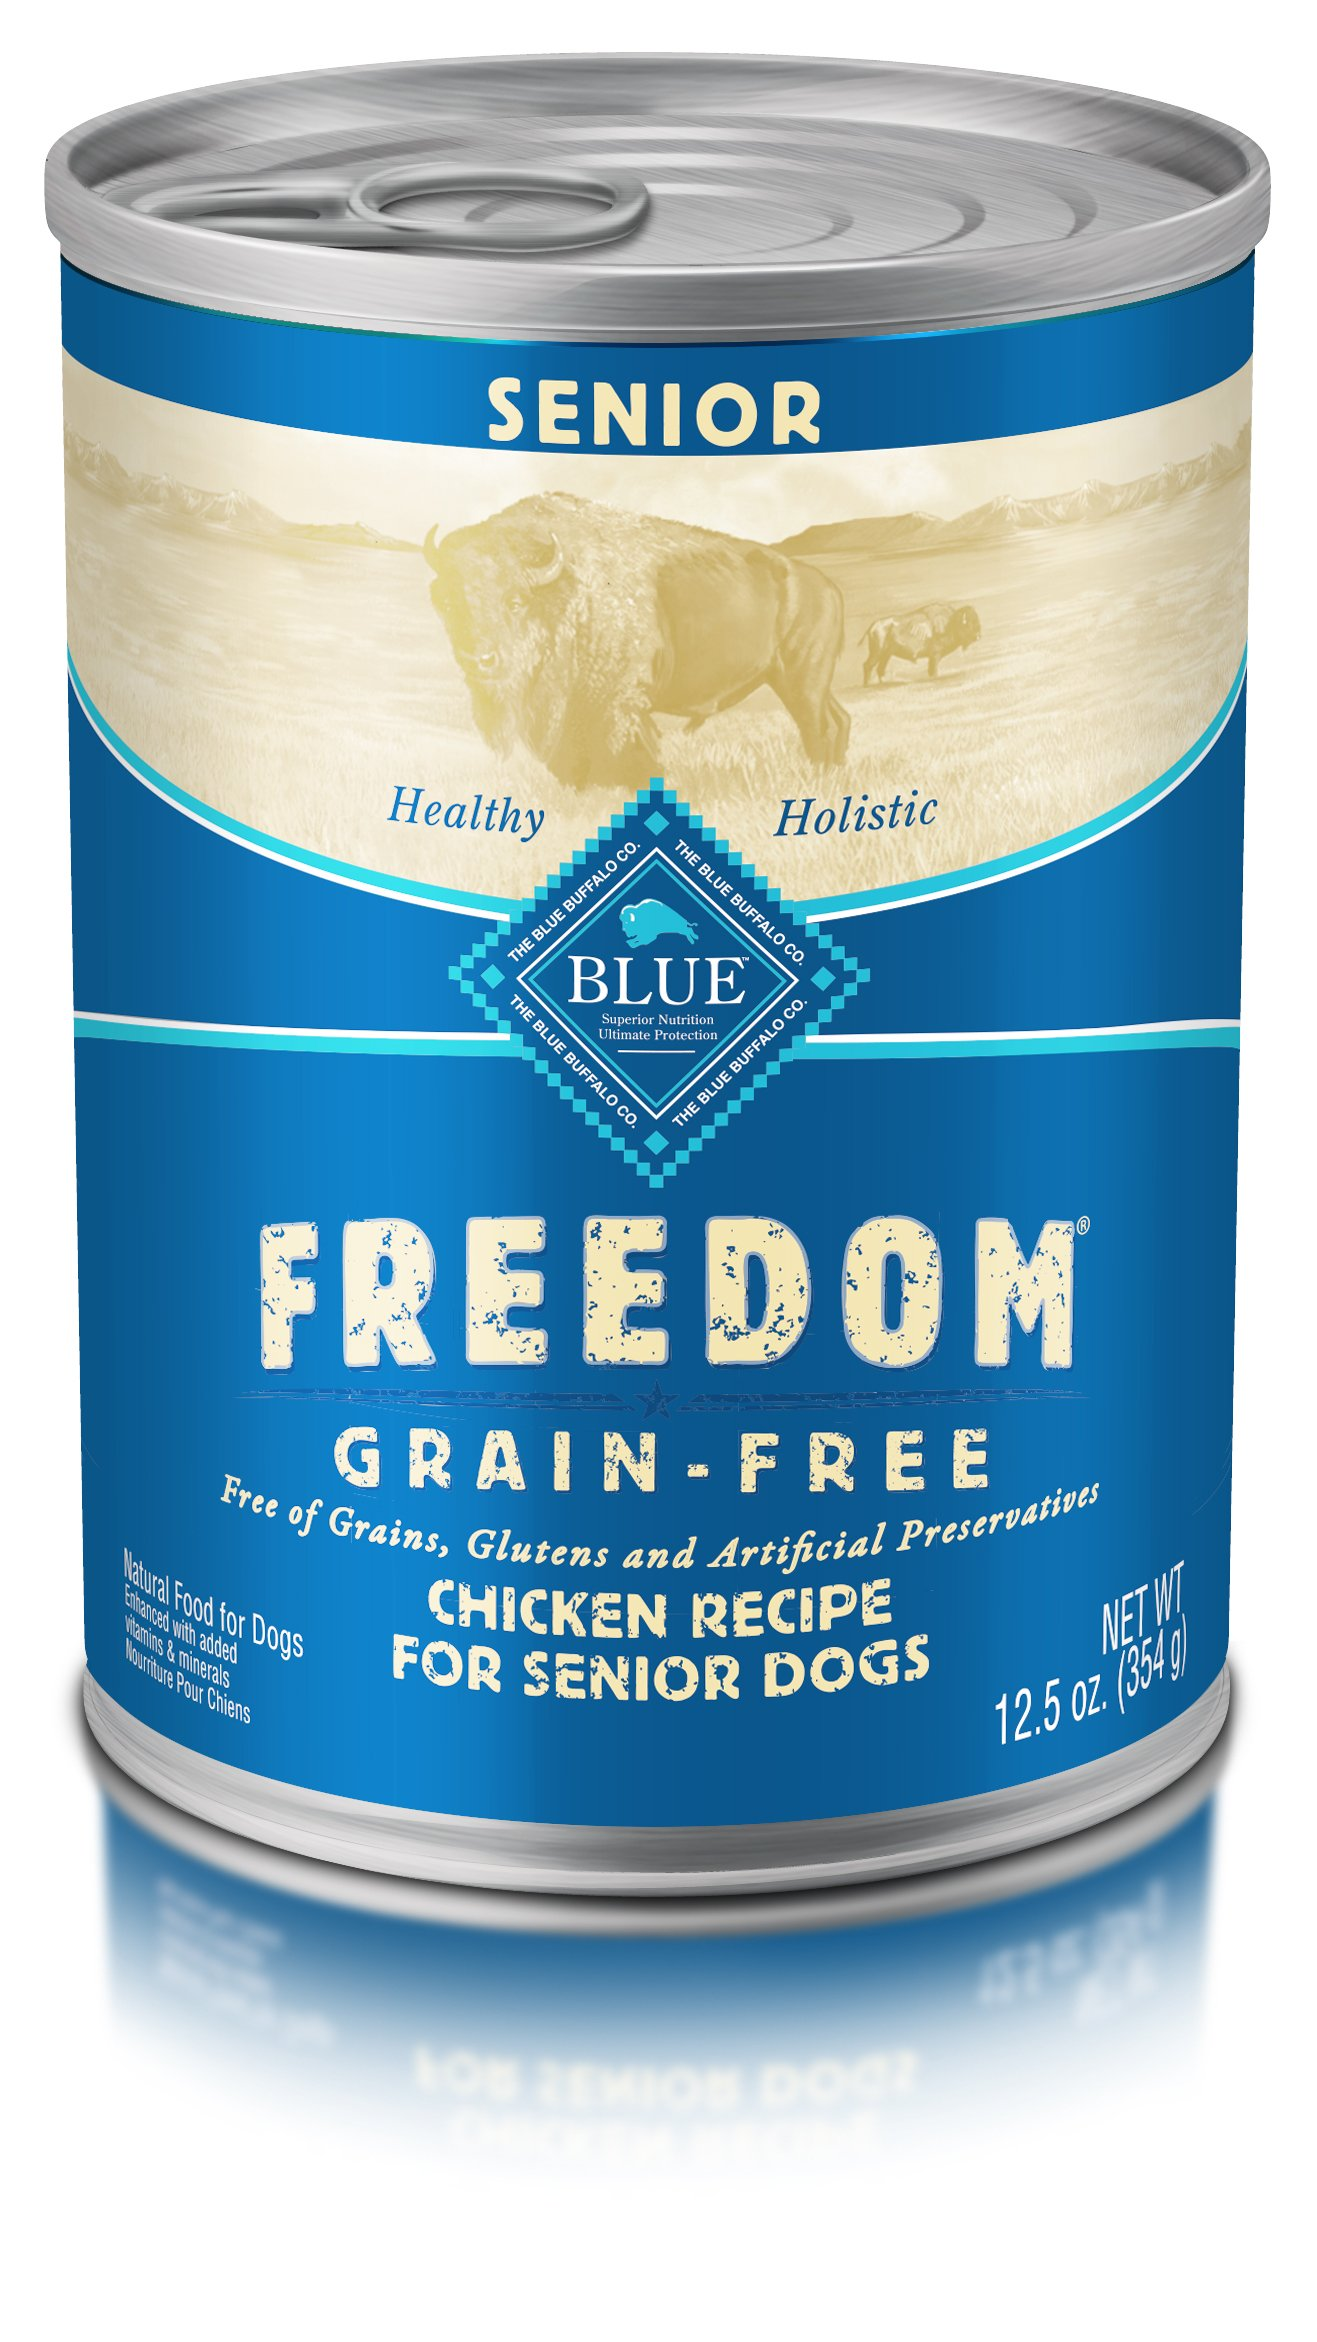 Blue Freedom Senior Grain Free Chicken Wet Dog Food 12.5Oz (Pack Of 12) by BLUE Freedom